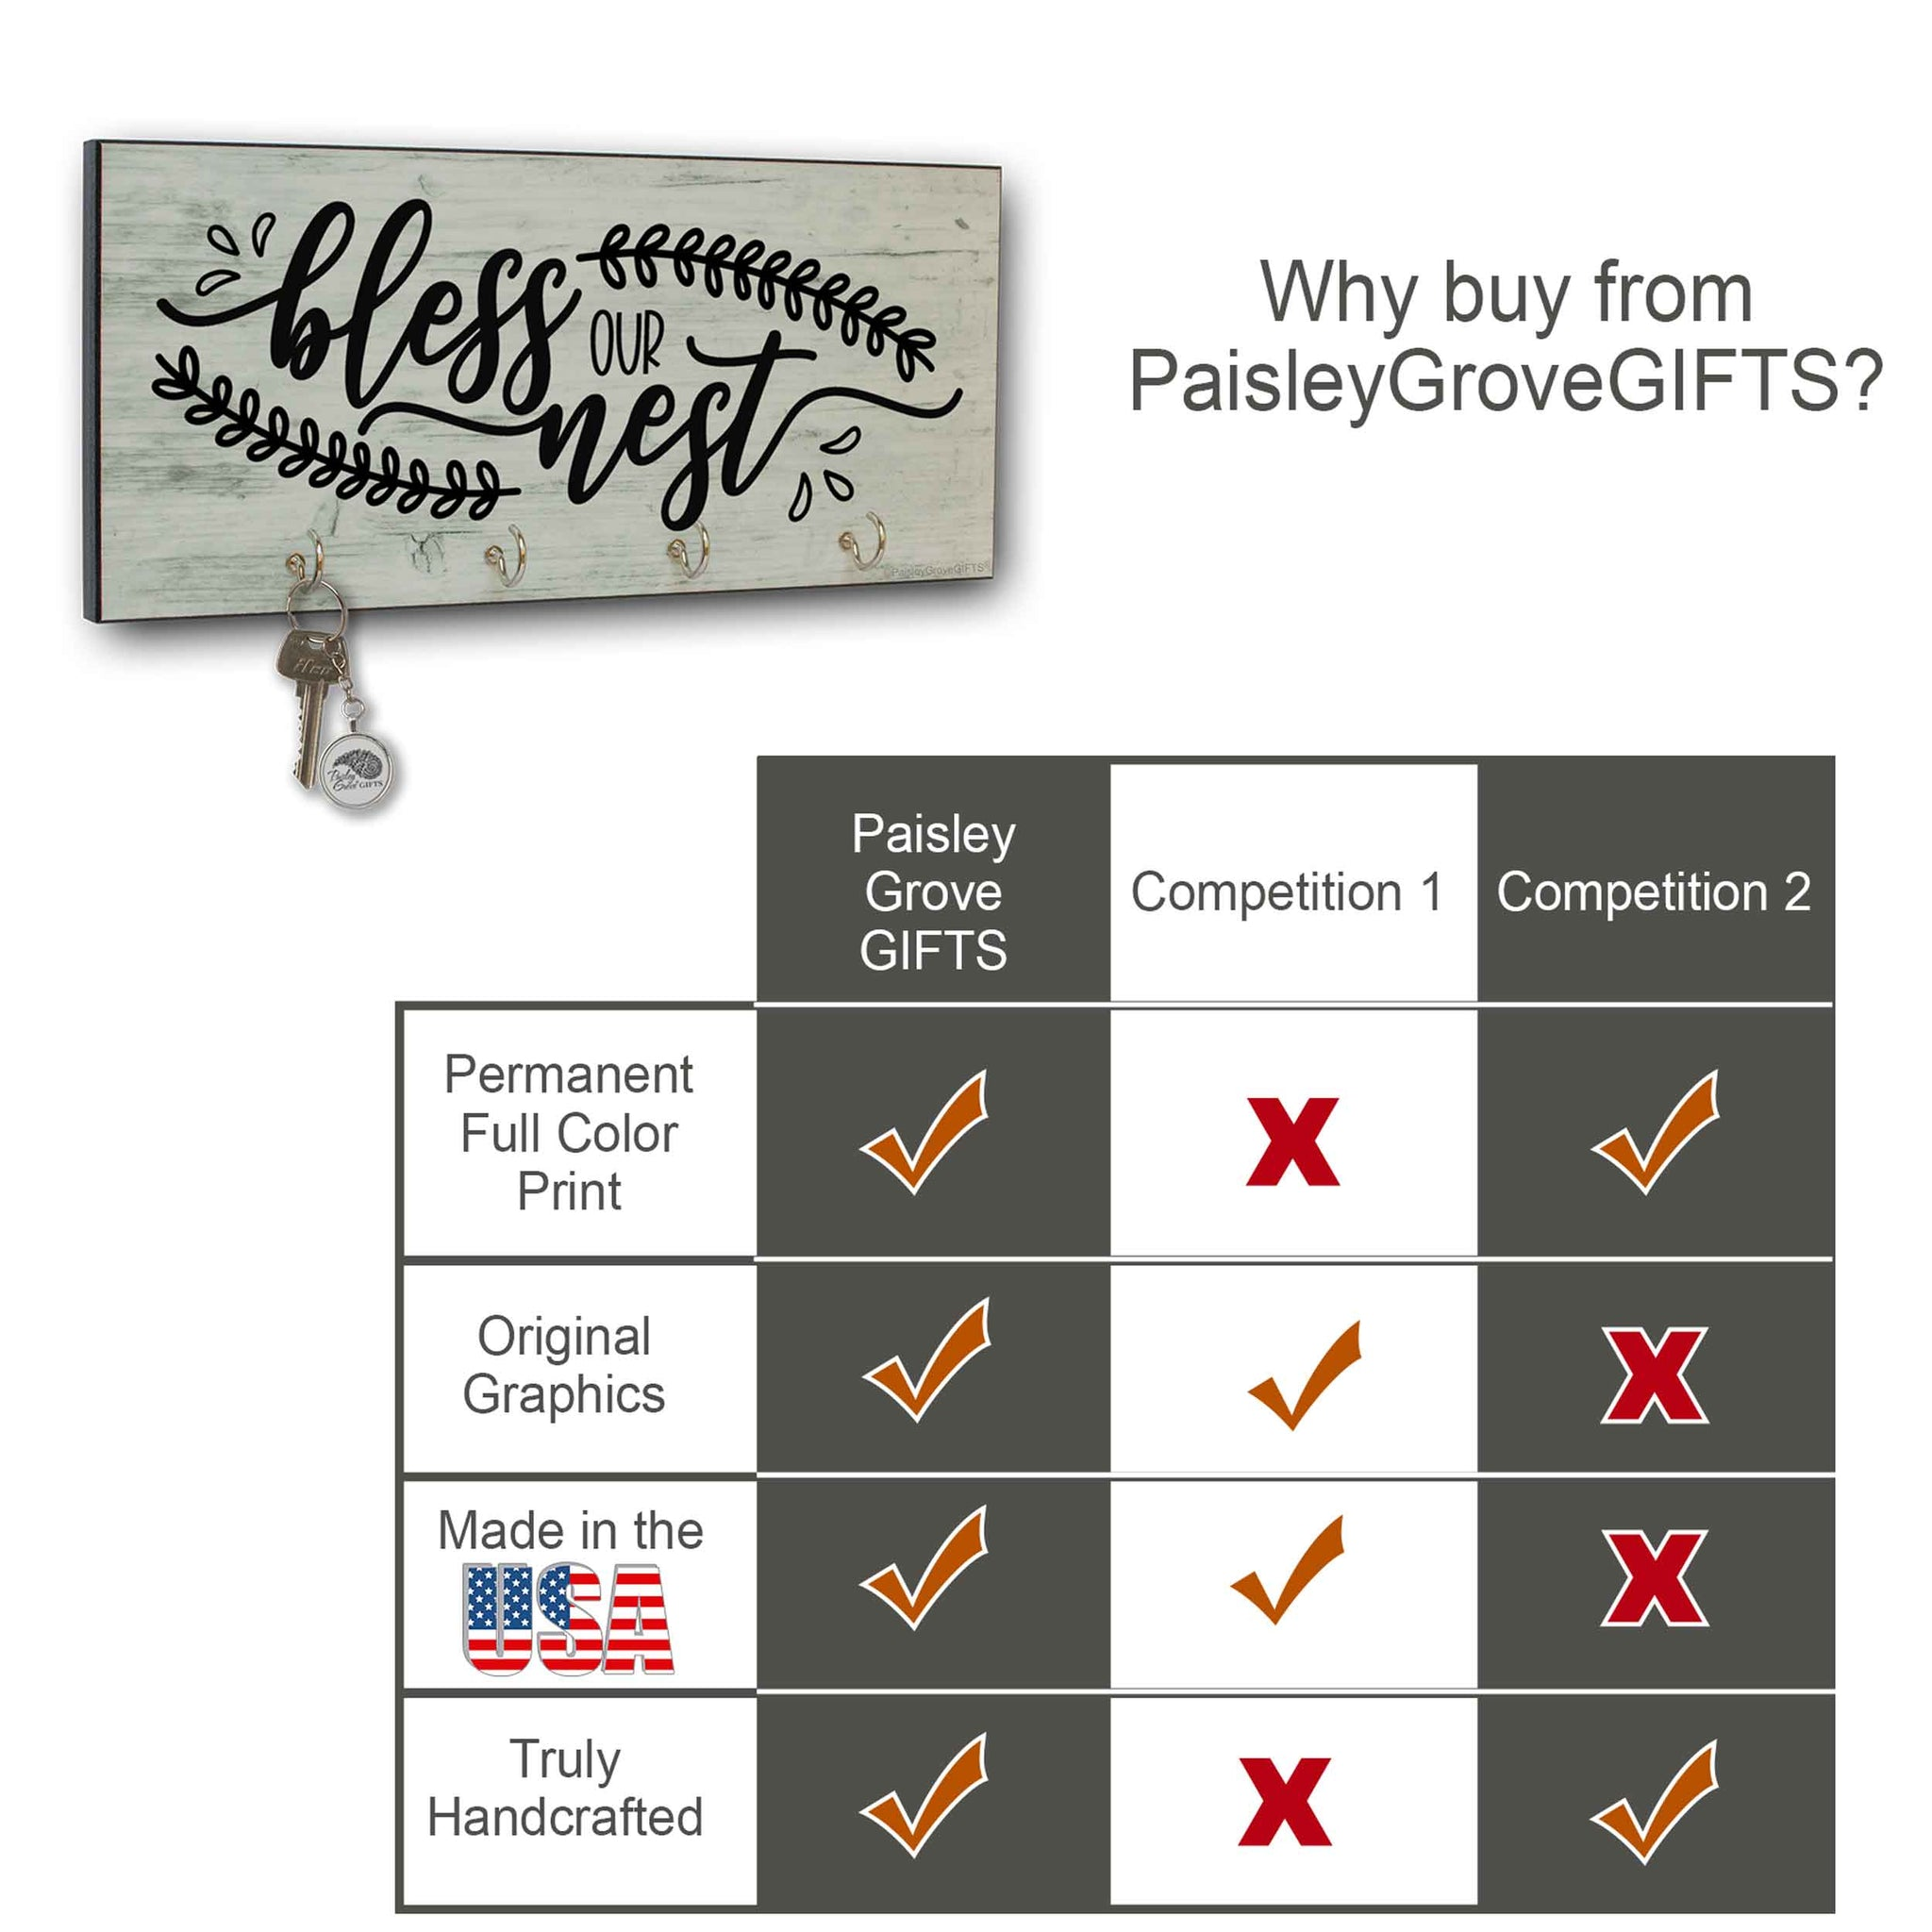 CopyrightPaisleyGroveGIFTS S310a1 Rustic Farmhouse Shiplap Wall key rack unique new home gift for homeowners quality comparison